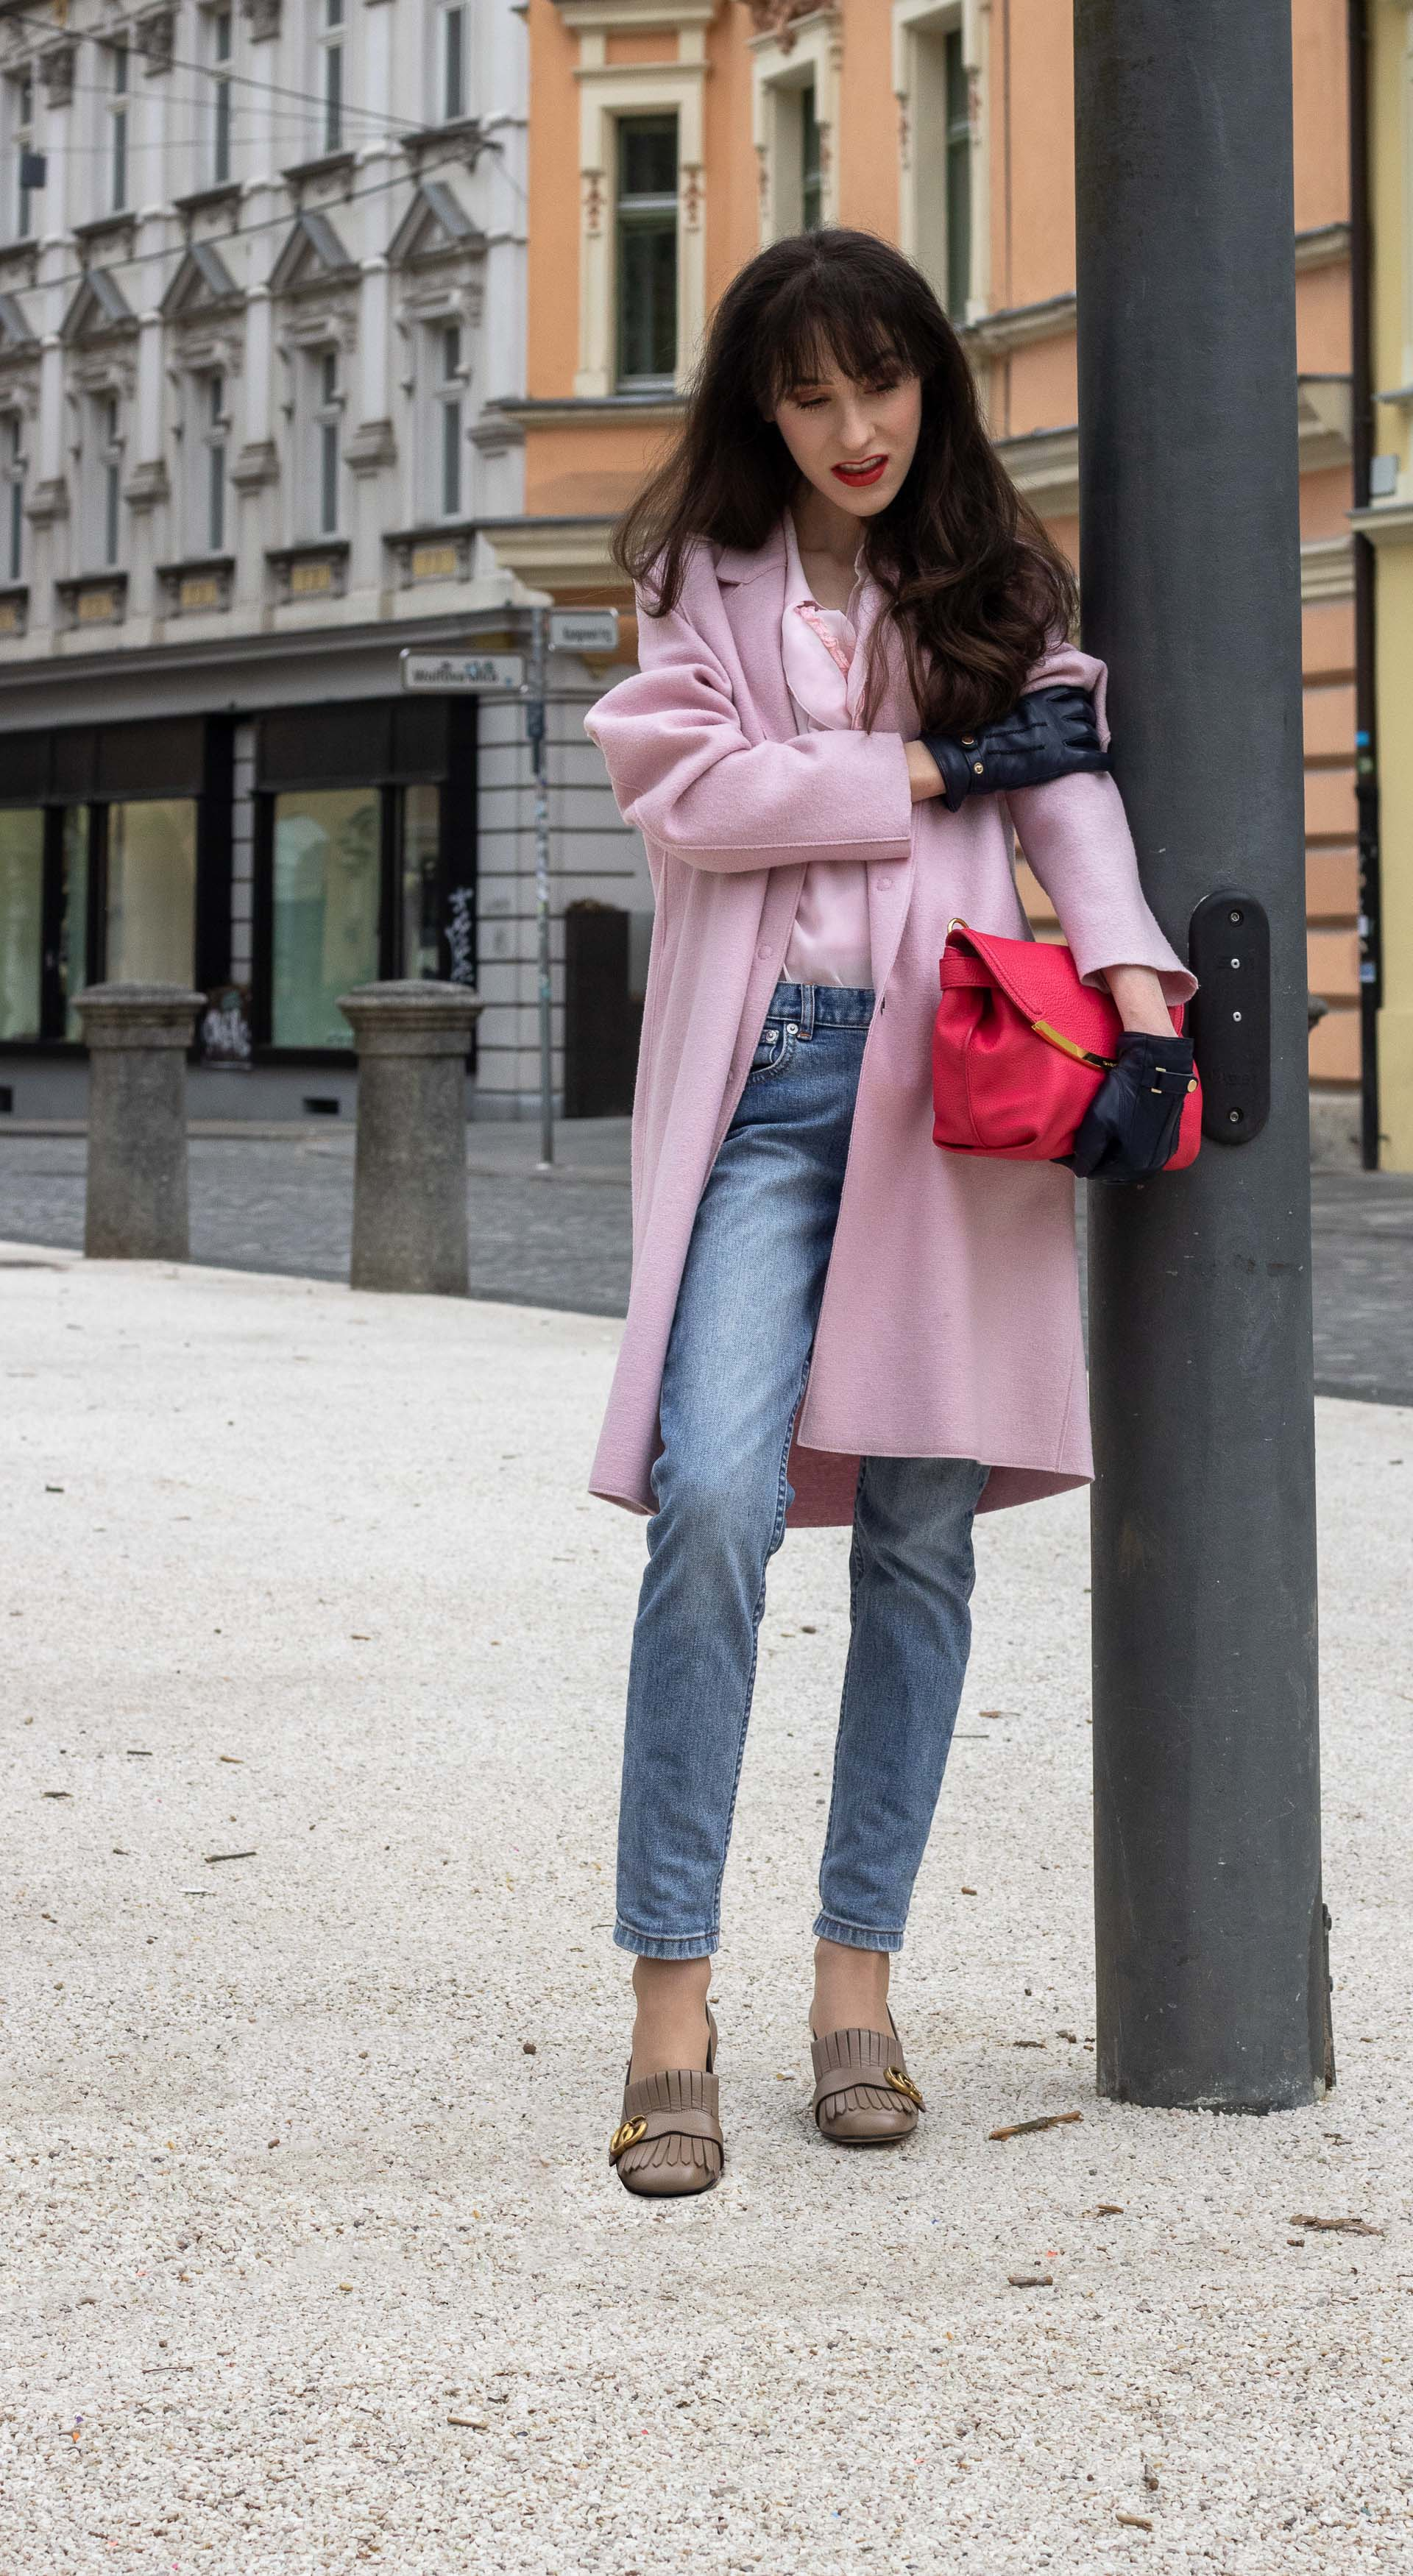 Fashion blogger Veronika Lipar of Brunette from Wall Street dressed in A.P.C. blue jeans Harris Wharf London pink coat Red Valentino pink blouse pink pouch bag leather gloves Gucci heeled loafers on the street in-between seasons